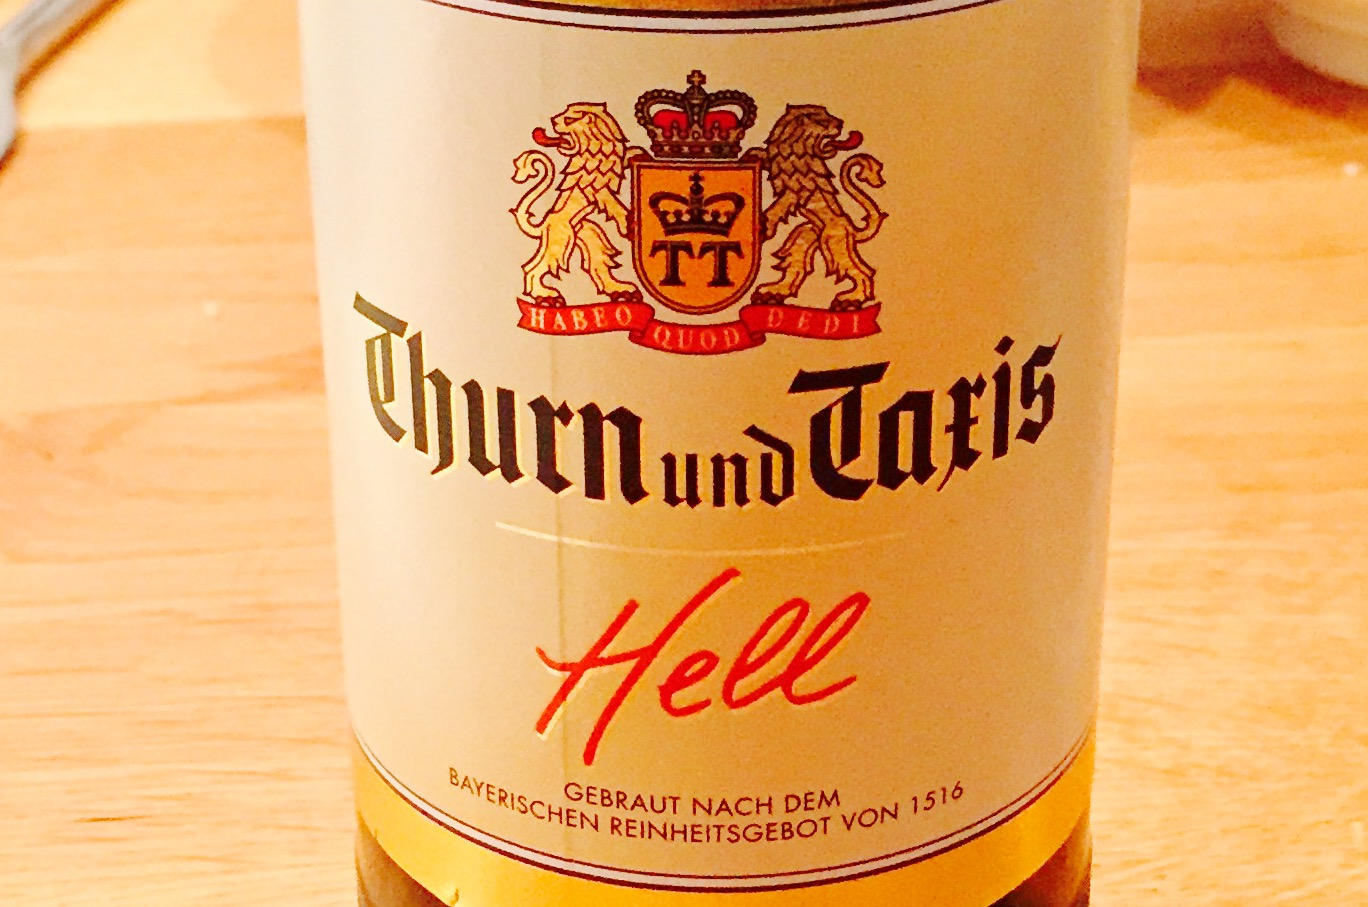 Thurn und Taxis - Helles